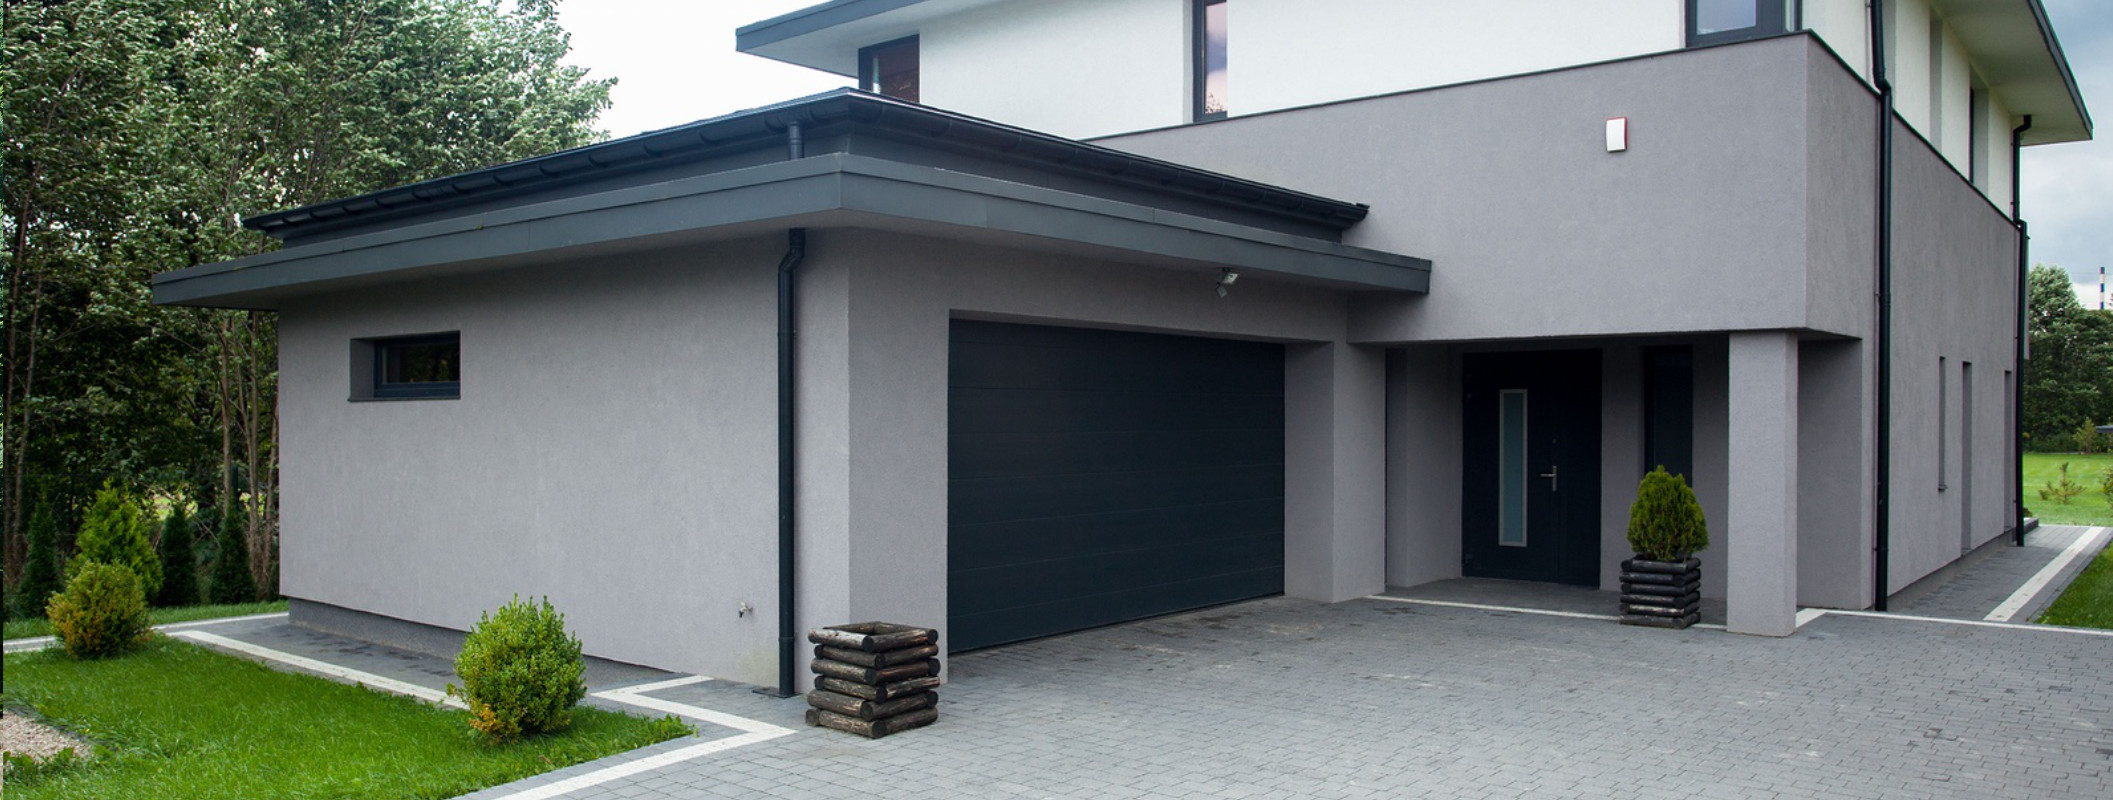 Modern house with grey block paving driveway